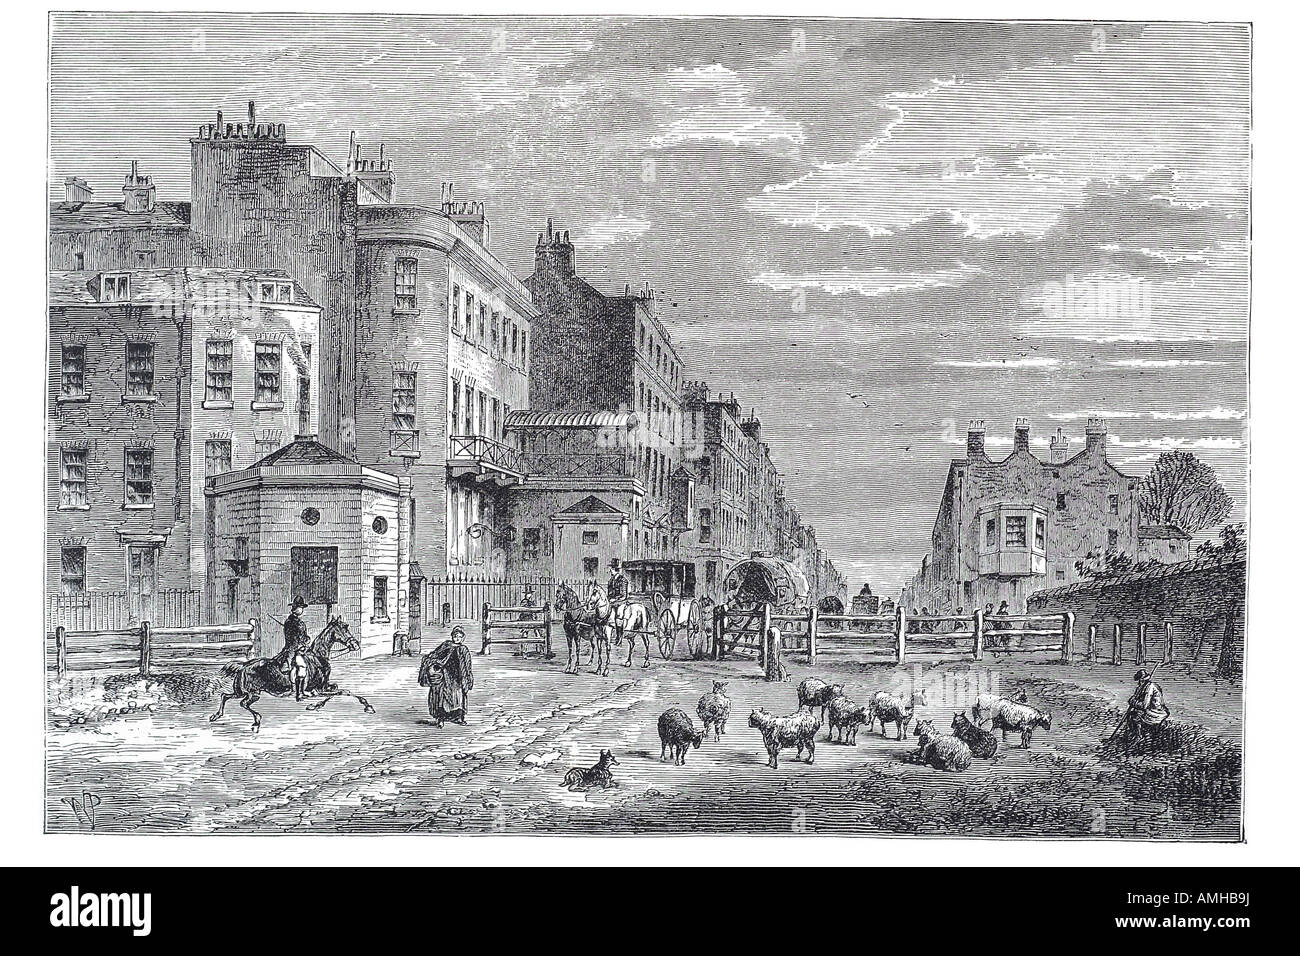 1820 tyburn turnpike OXFORD STREET Marble Arch City royal urban London Greater capital England English Britain British - Stock Image